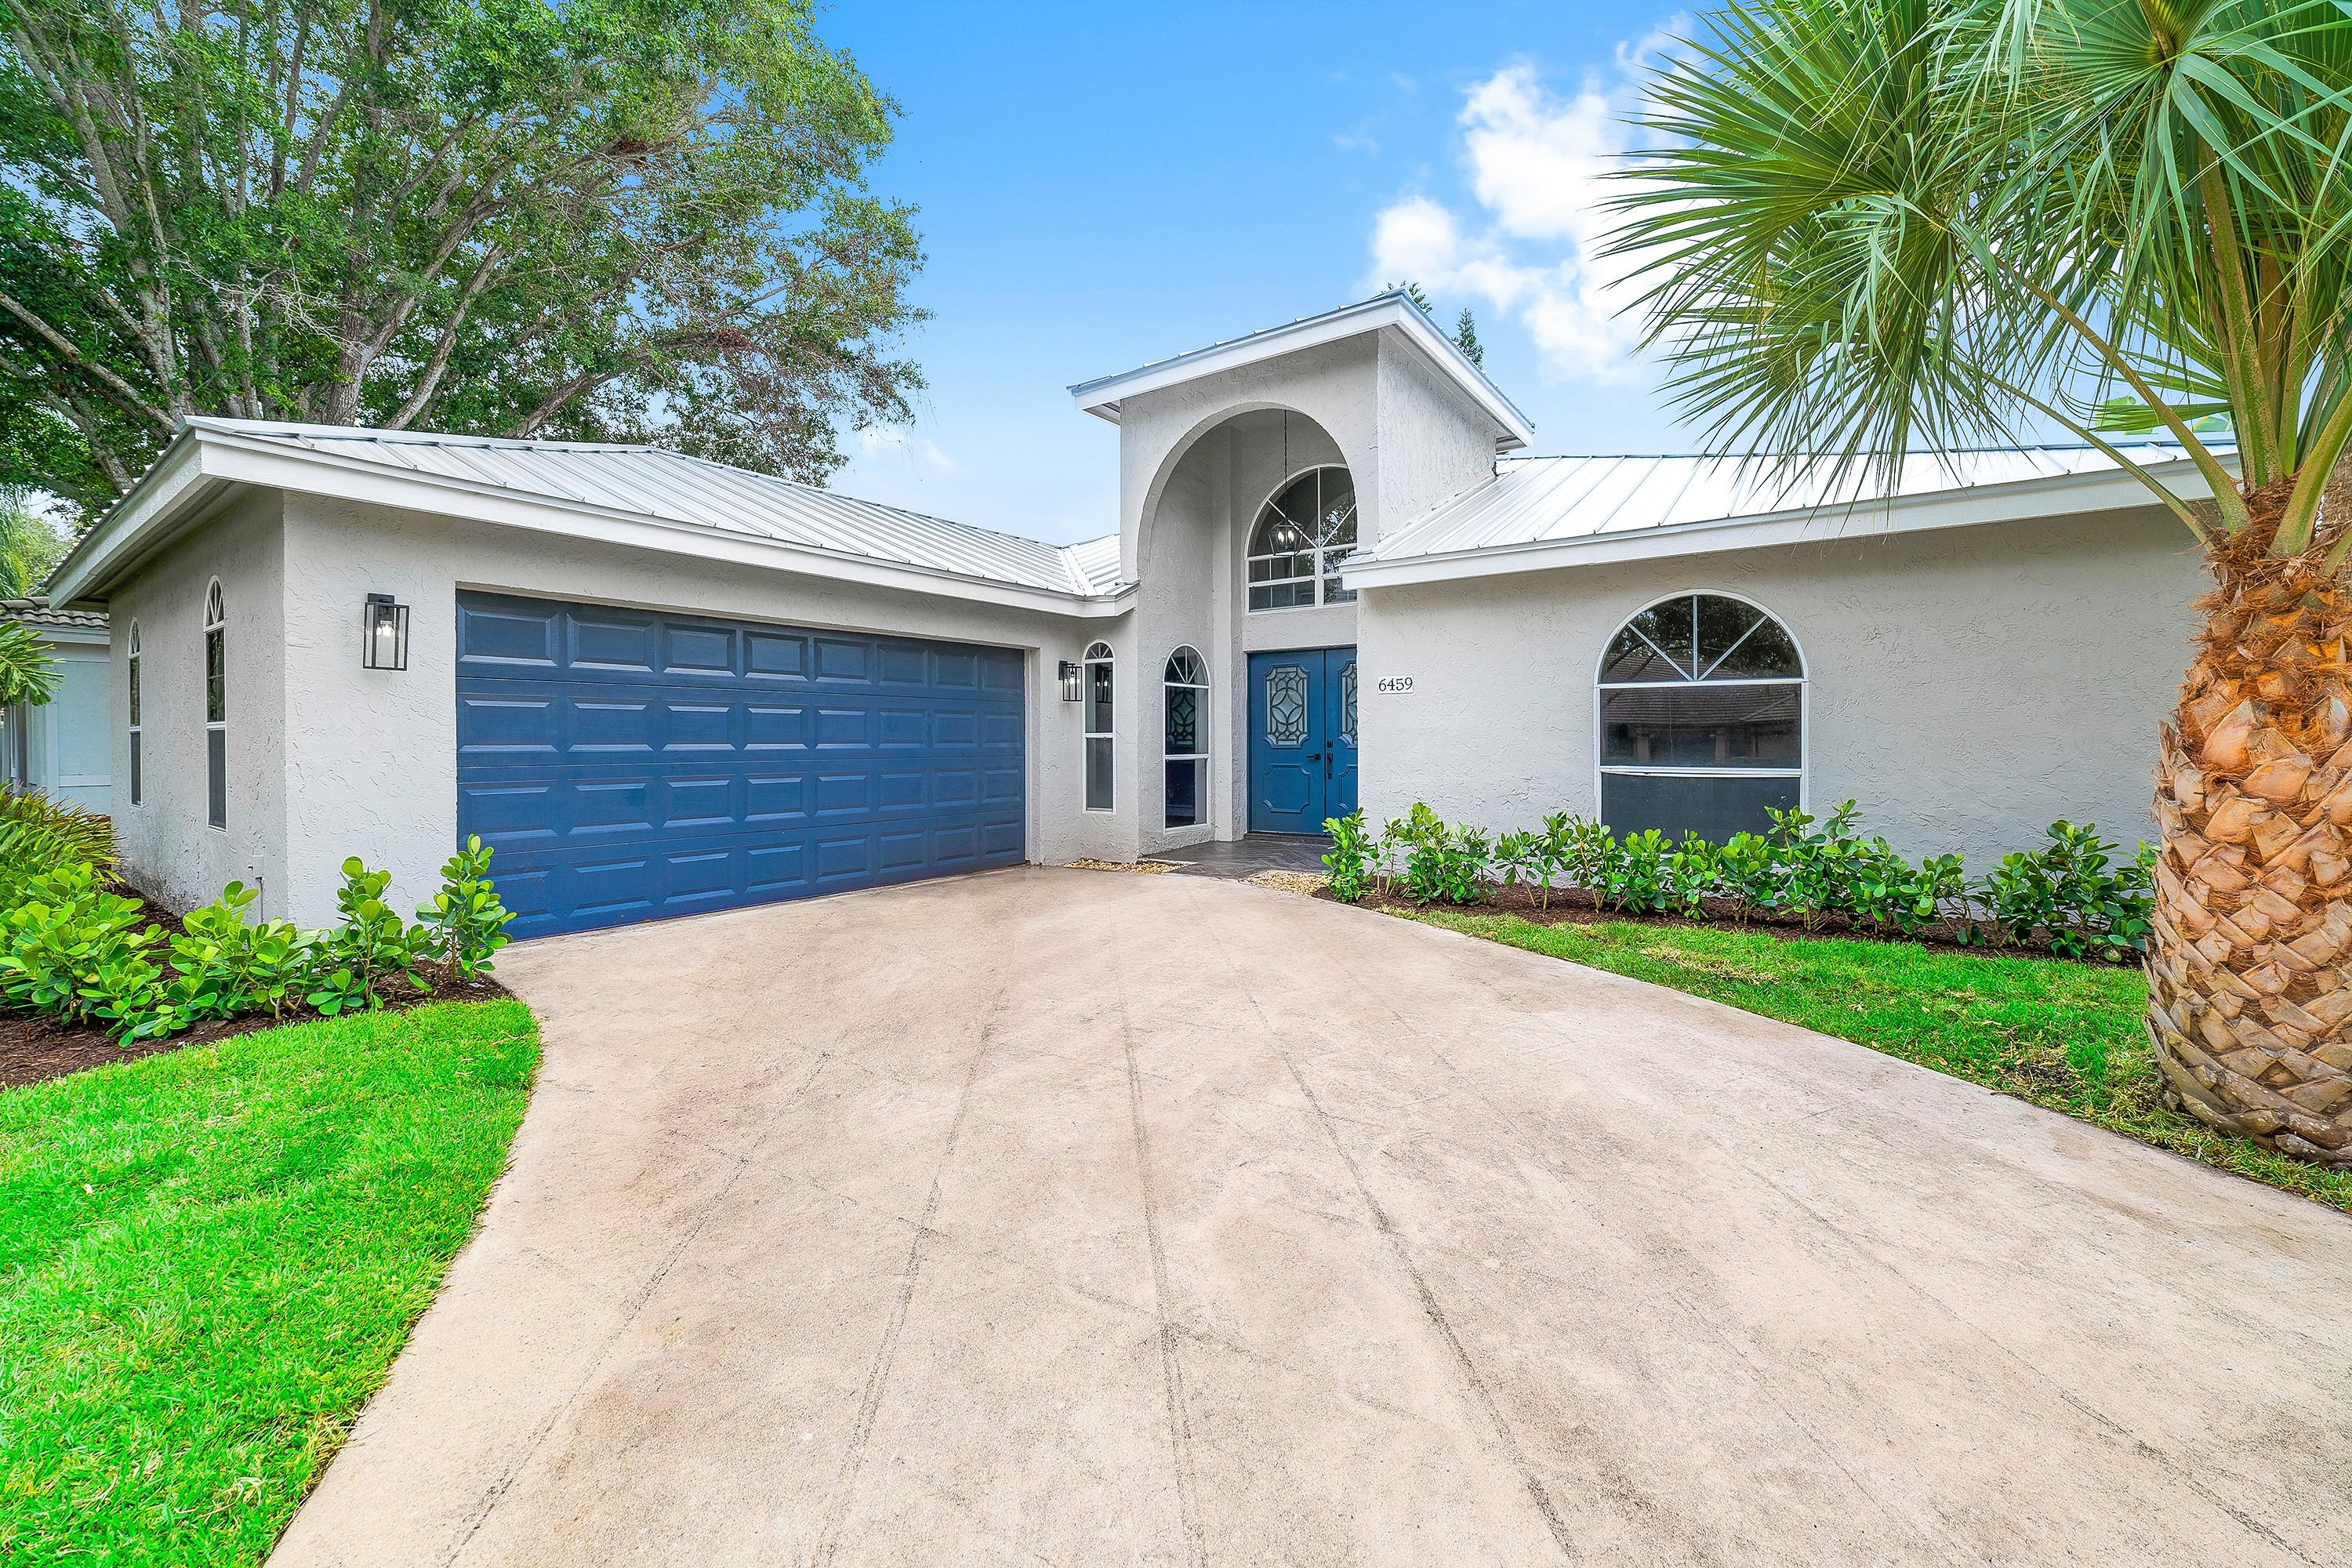 Photo of 6459 Longleaf Pine Drive, Jupiter, FL 33458